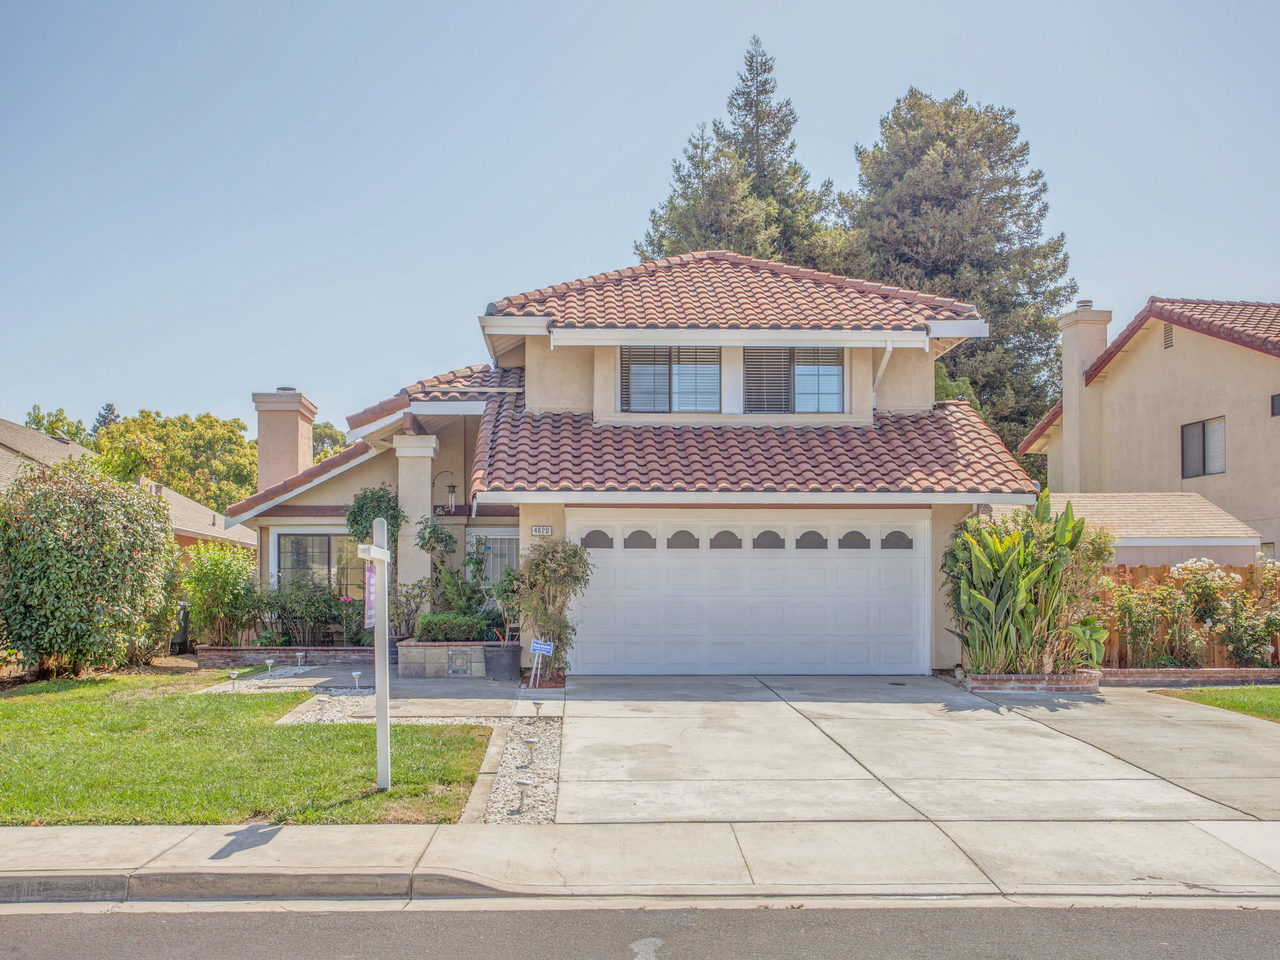 4620 Kelso St Union City CA-MLS_Size-001-4-Front Exterior-1280x960-72dpi.jpg